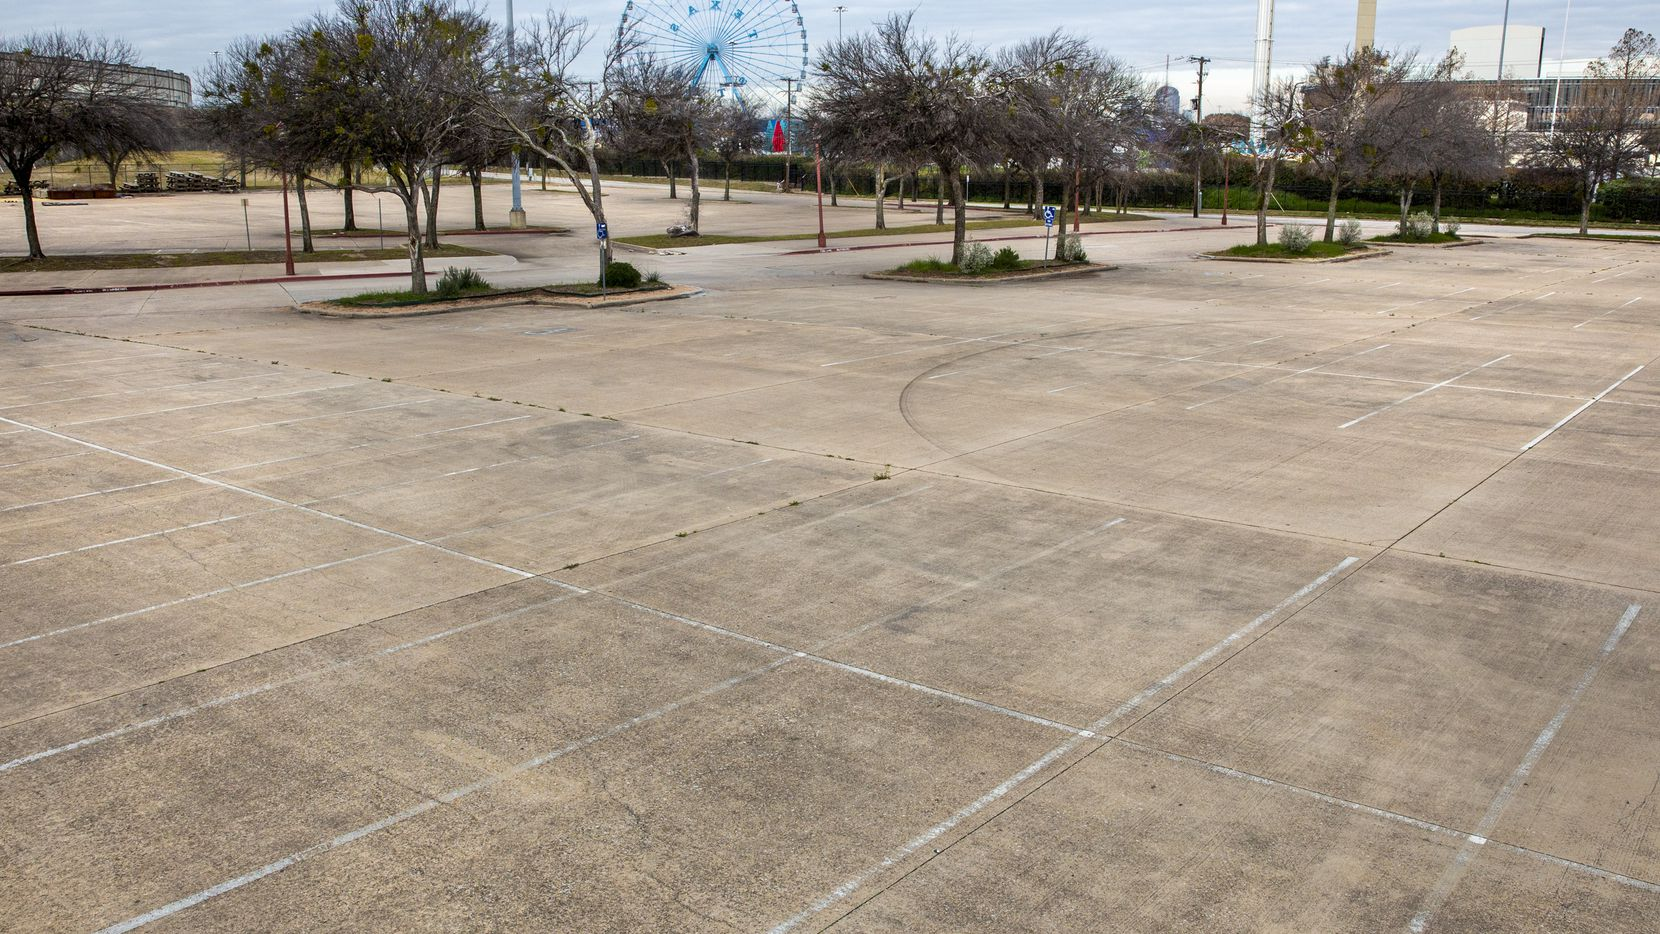 This Fair Park parking lot, located along Fitzhugh Avenue near Lagow Street, is the proposed location for the Fair Park neighborhood park.